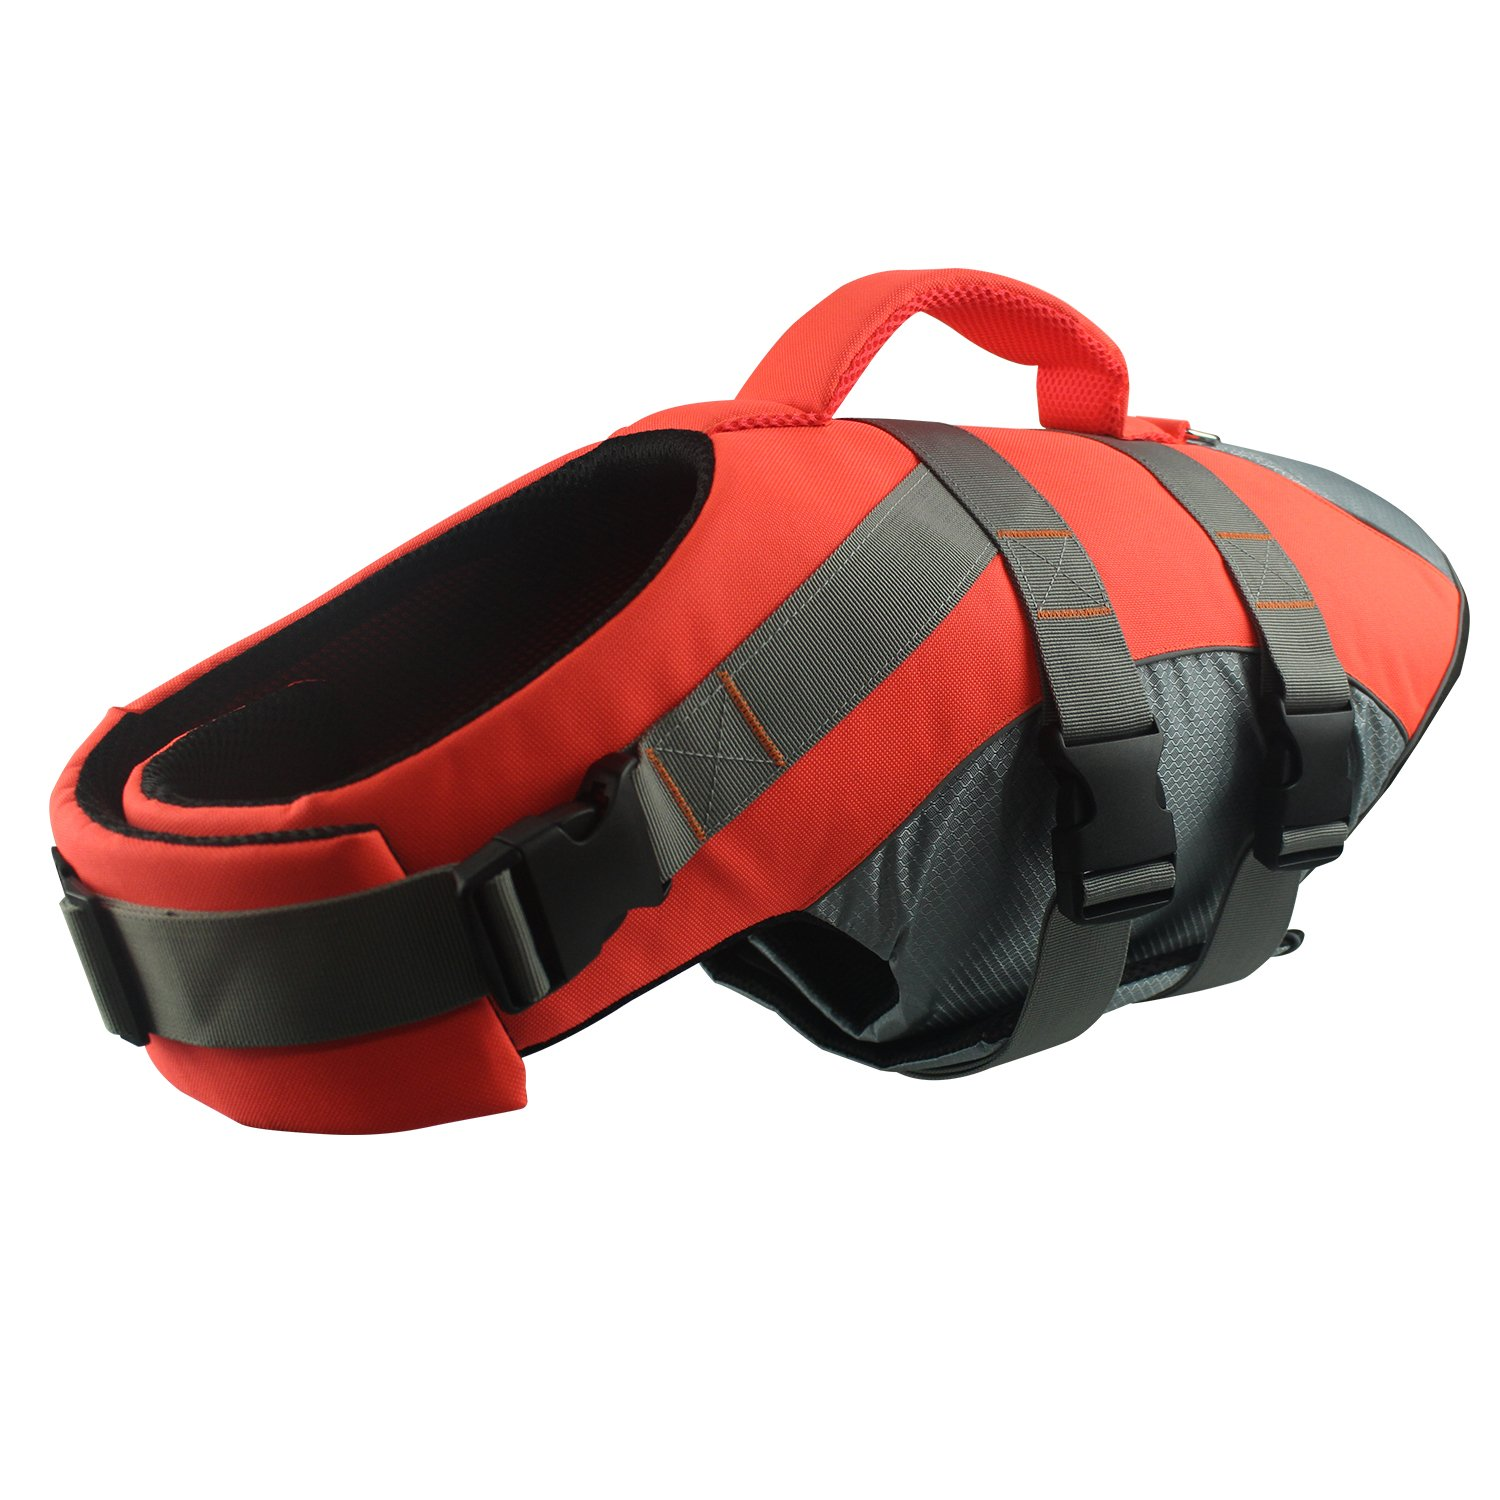 HOLDOOR Sport Style Dog Life Jacket with Rescue Handle and Reflective Trim - for Small, Medium and Large Breeds - Adjustable, Buoyant, Abrassion-Resistant, Ripstop by HOLDOOR